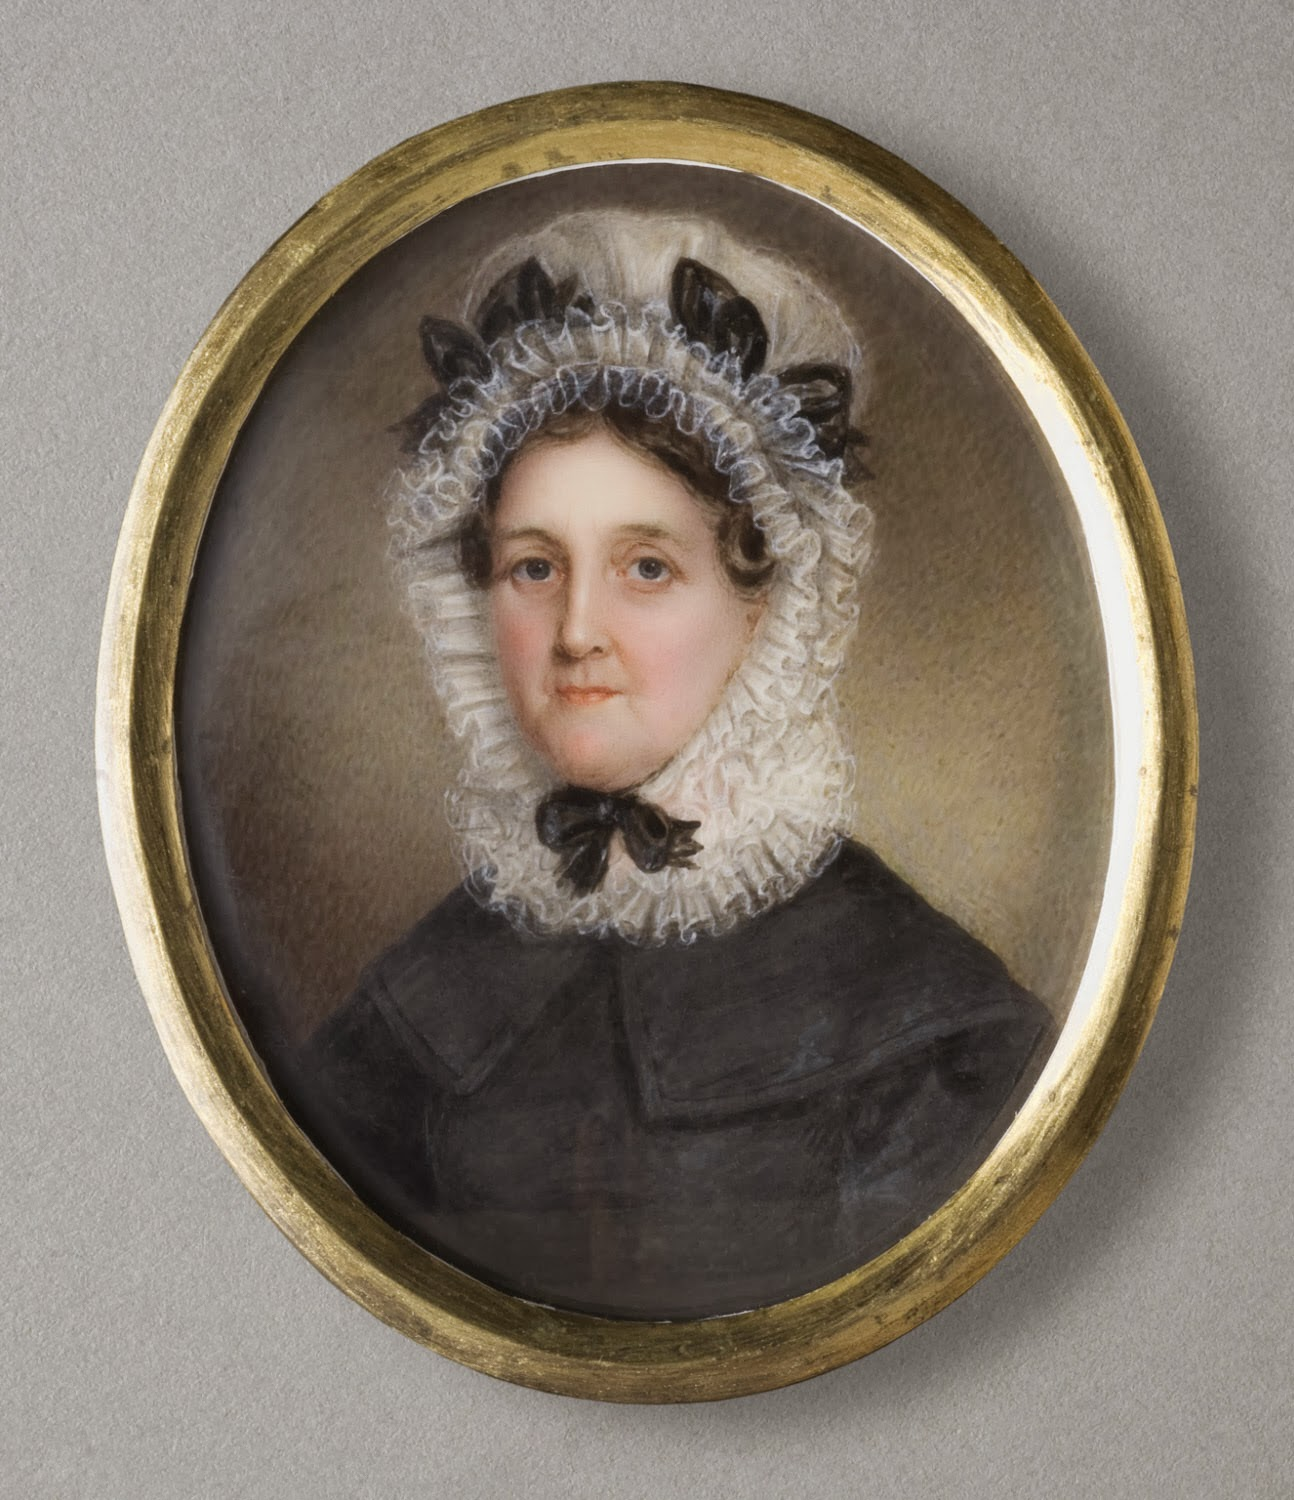 Anne West frazier (1832), Anna Claypoole Peale